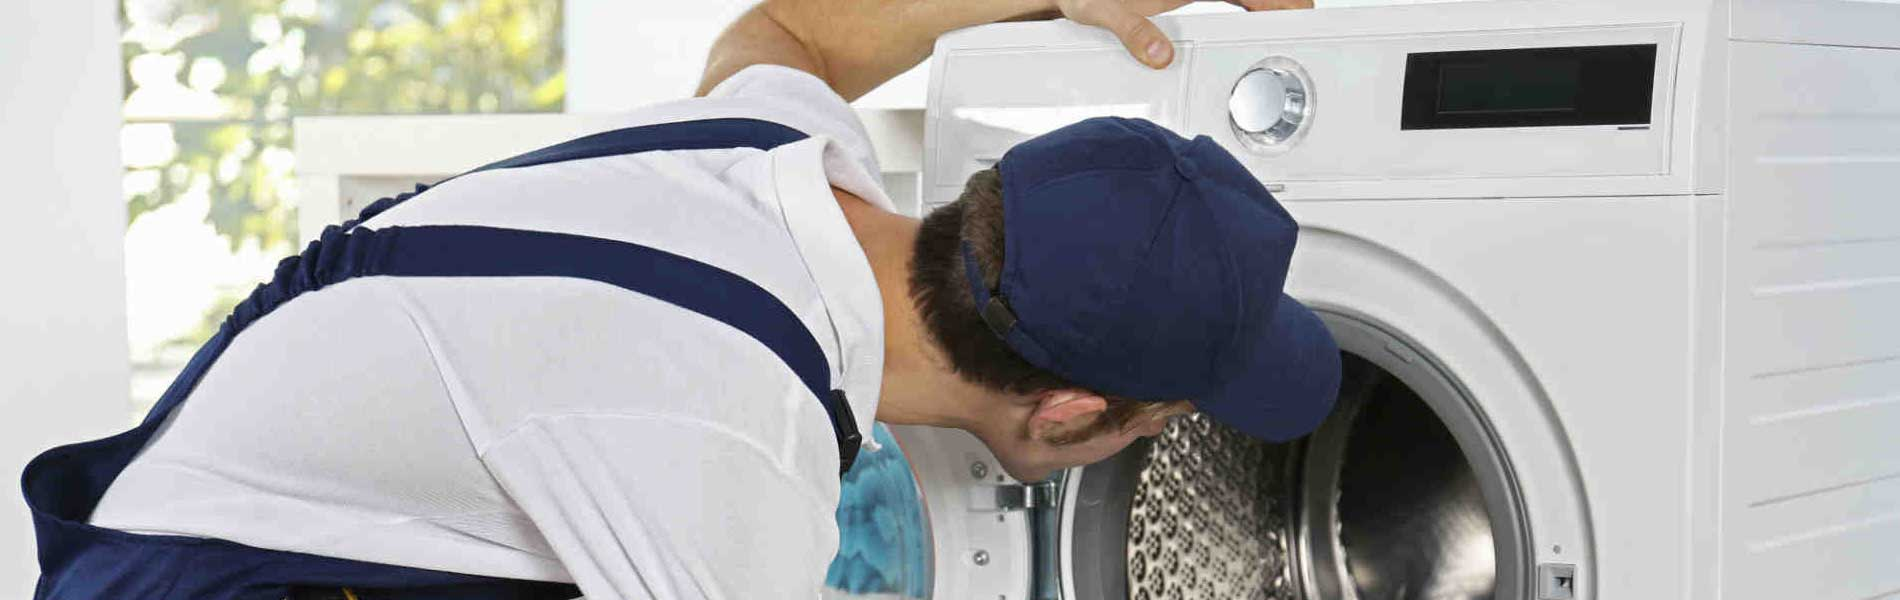 LG Washing Machine Repair in New Perungalathur